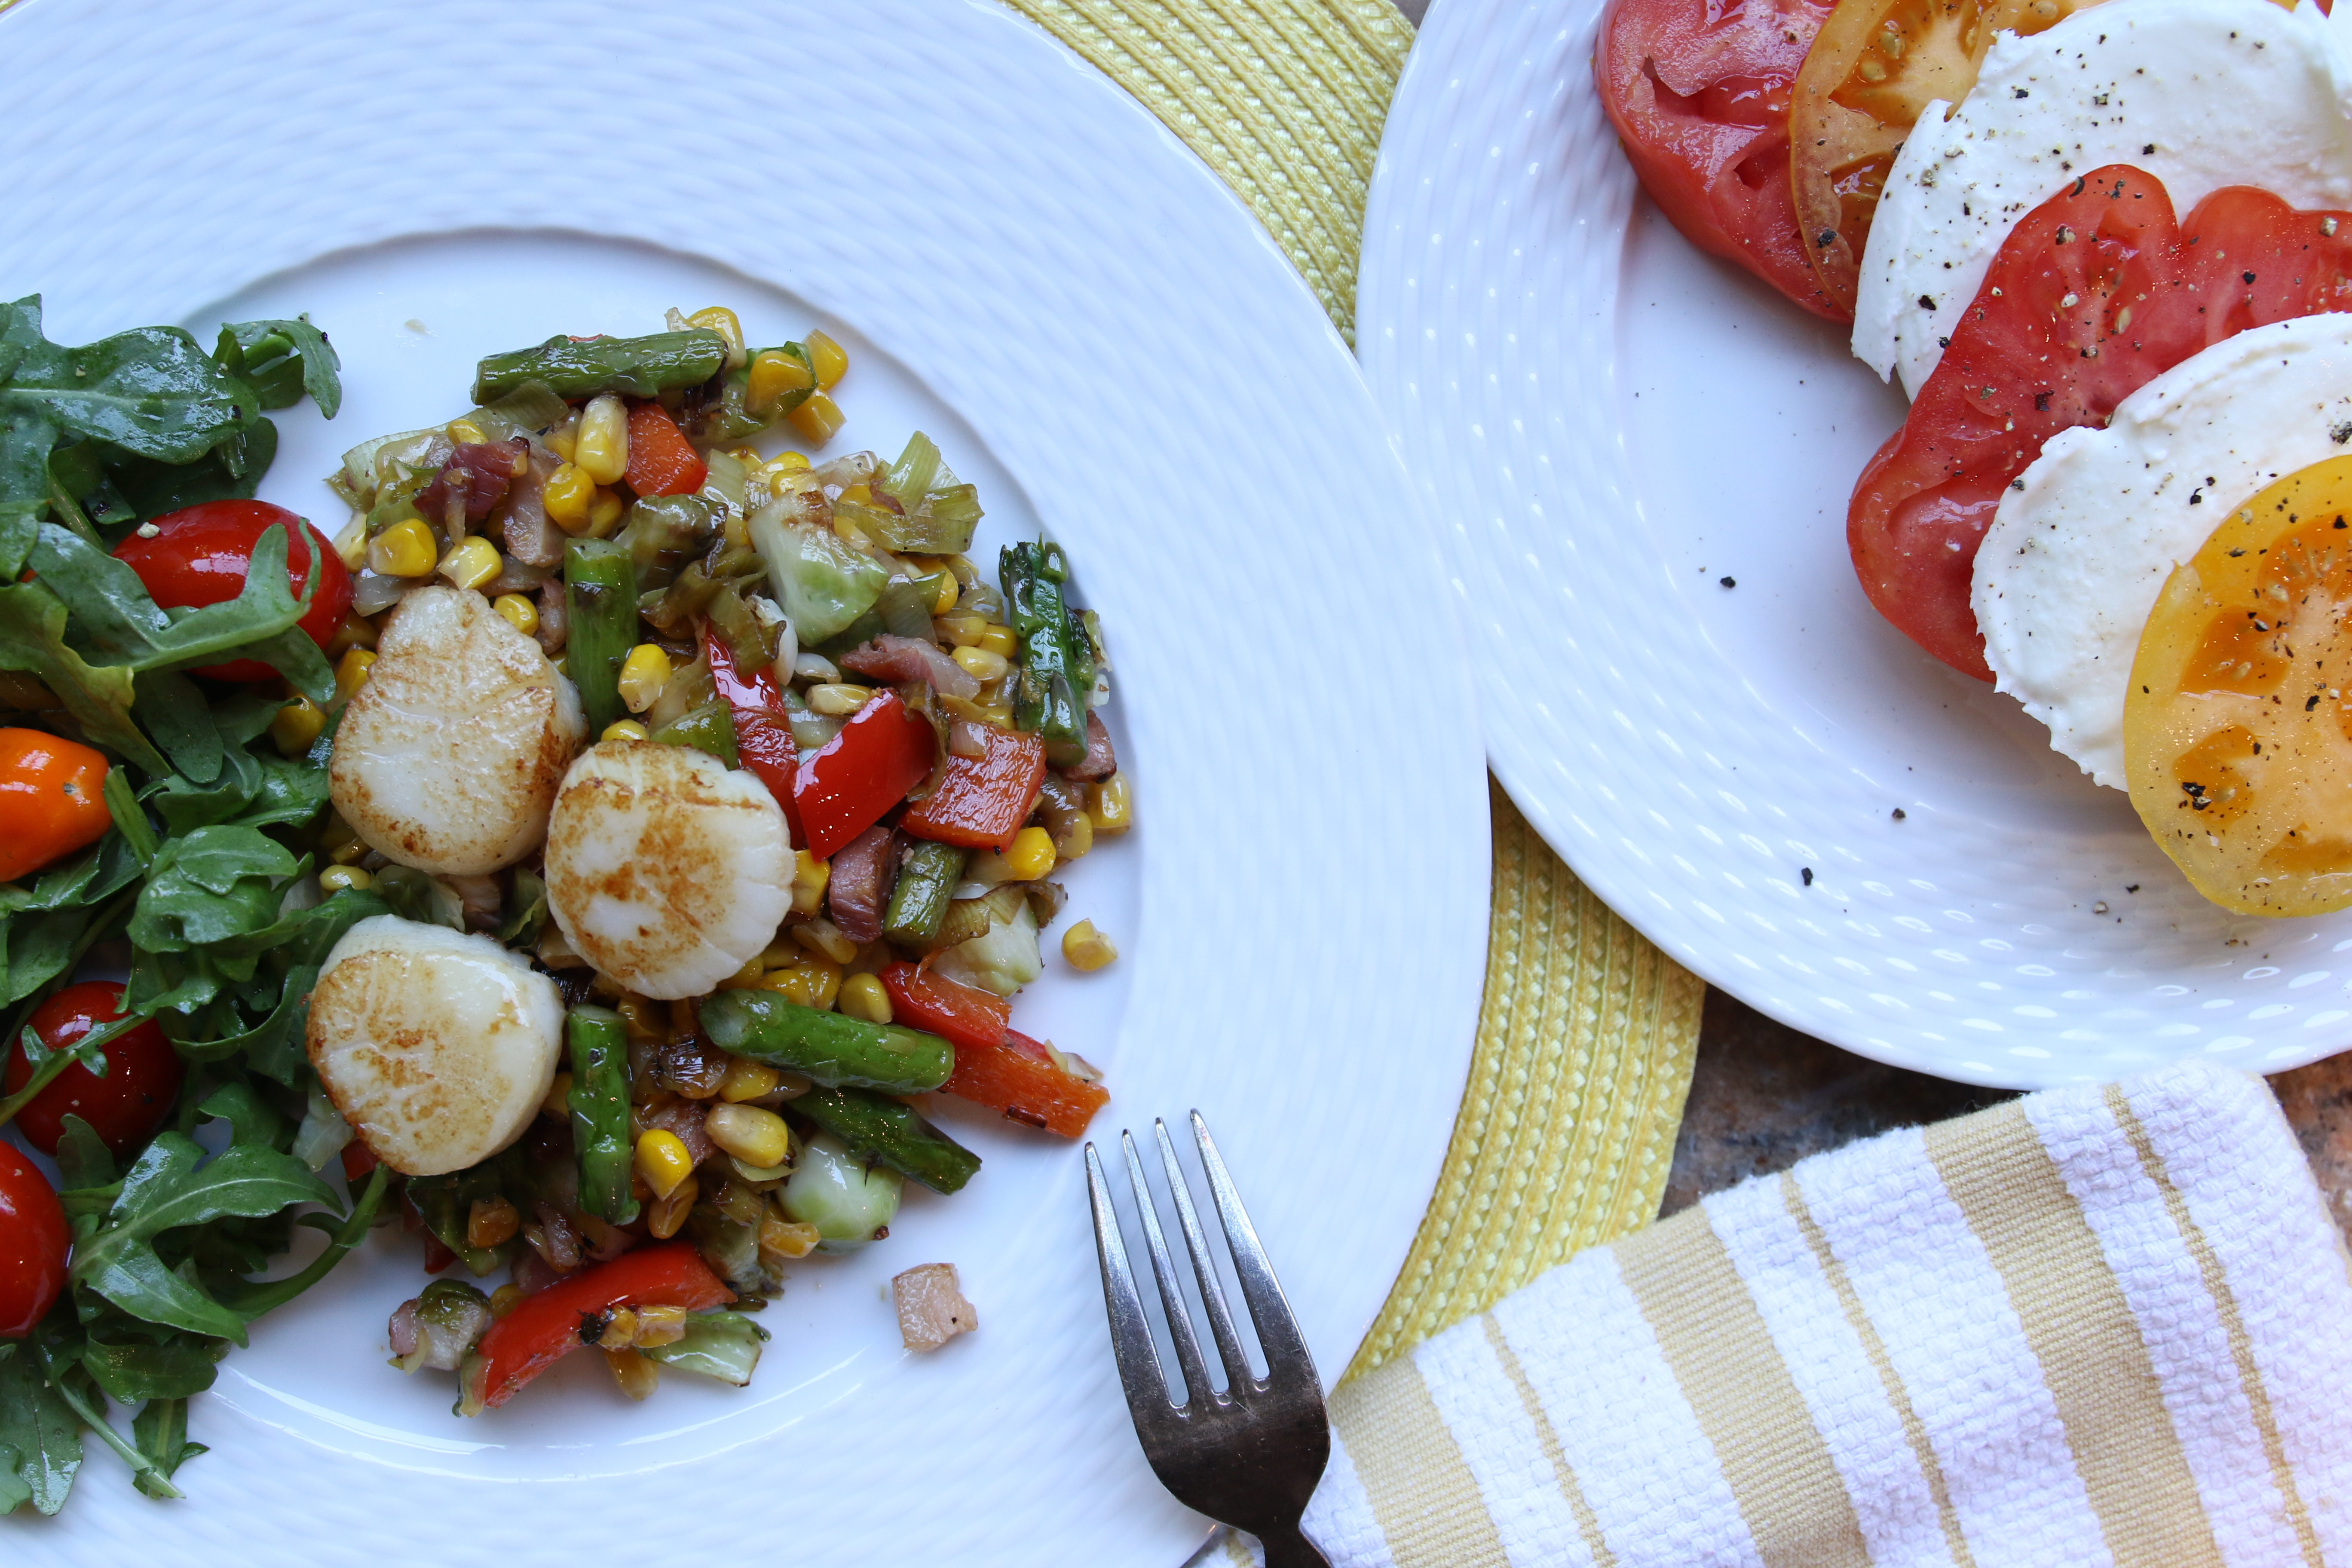 scallops with a corn and pancetta salad